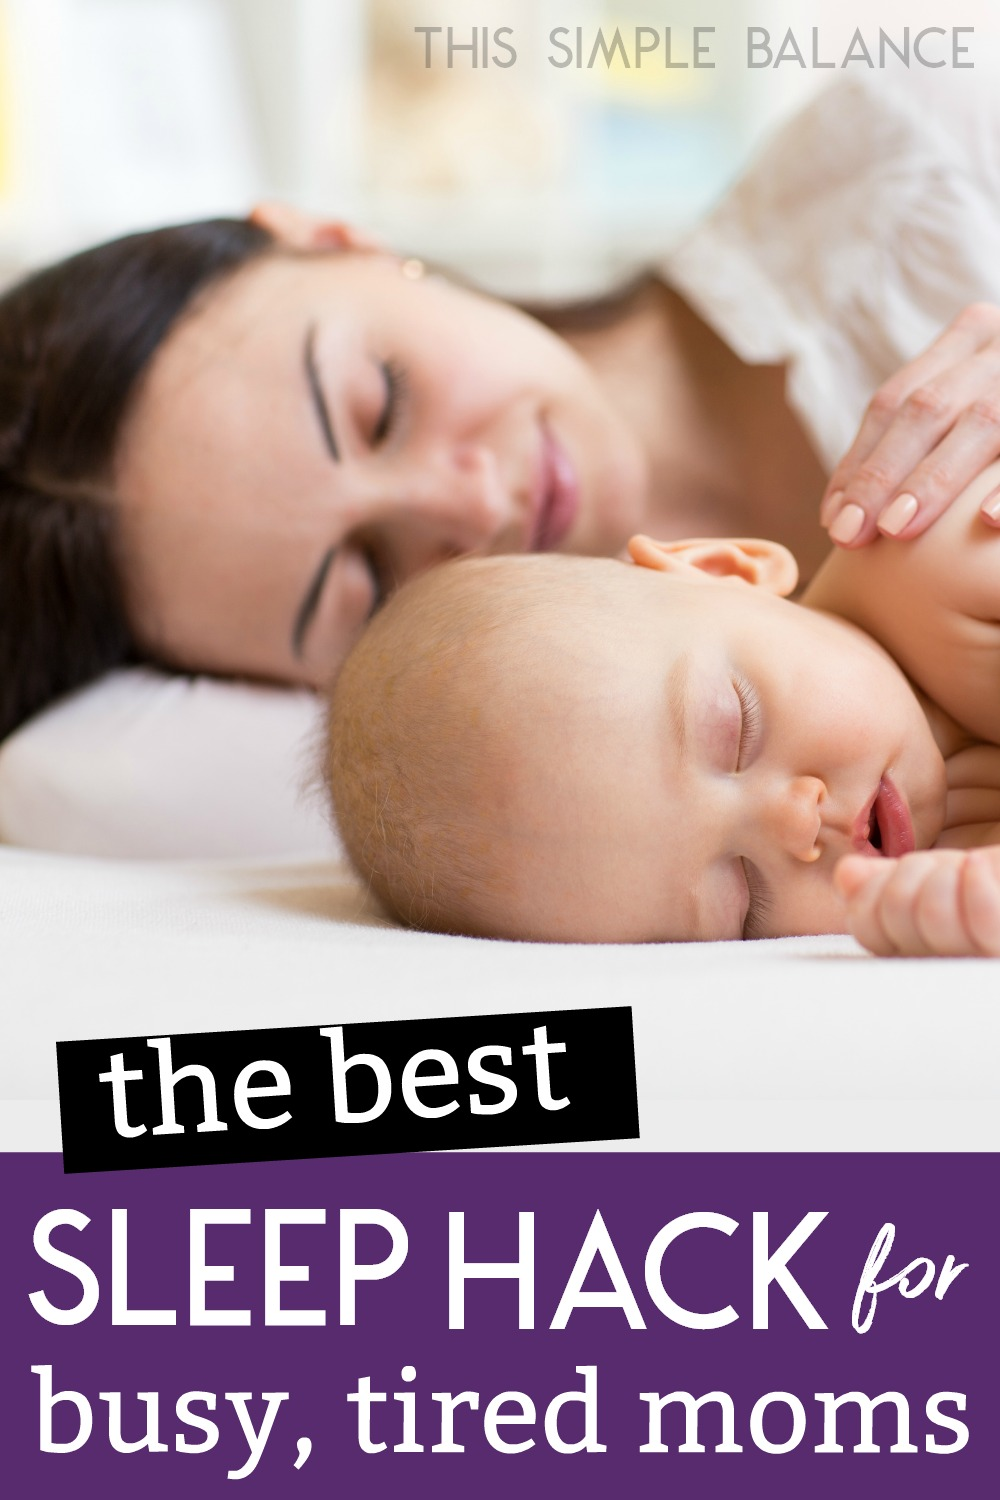 Co-sleeping is something I didn't try until baby #3, and BOY was I missing out on getting more sleep as a mom of littles! Don't miss this sleep tip that could make a HUGE difference in how rested you feel as a busy mom. #parentingtips #momadvice #momlife